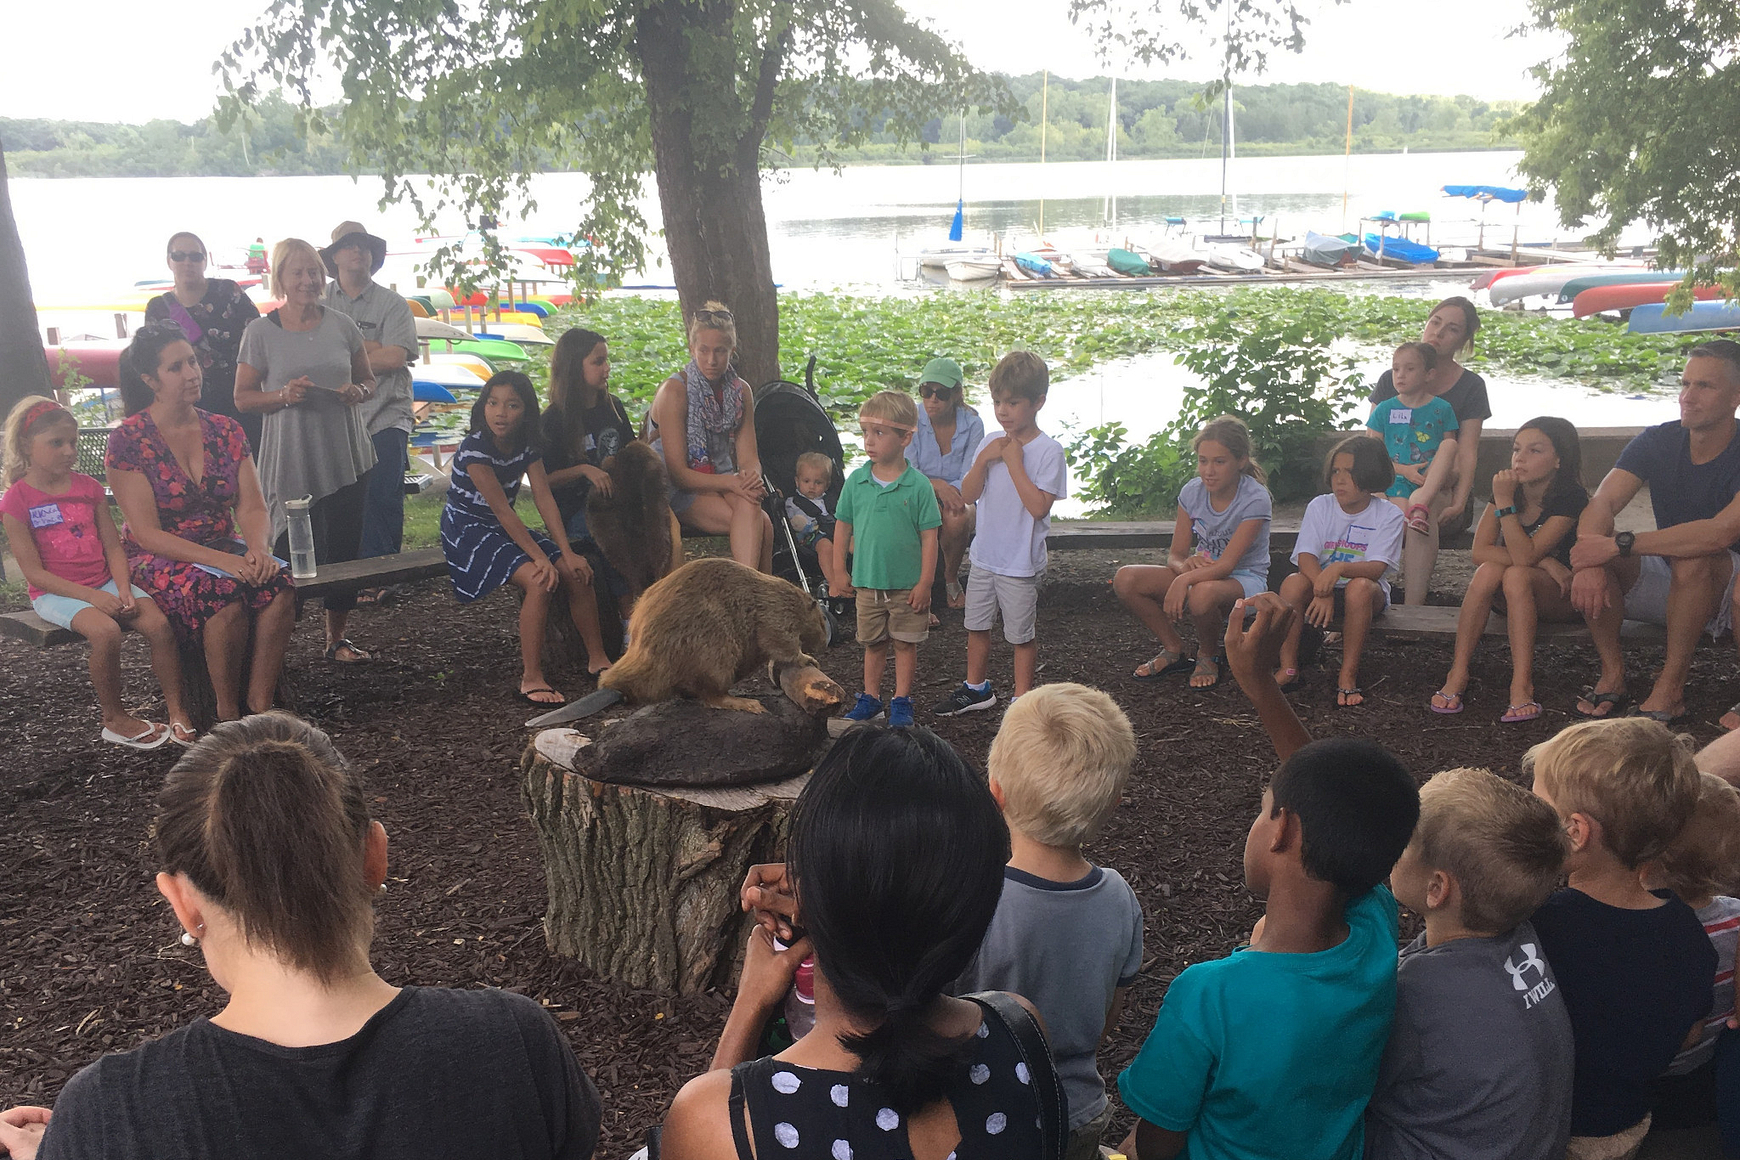 Group of children gathered around a stuffed beaver on a table